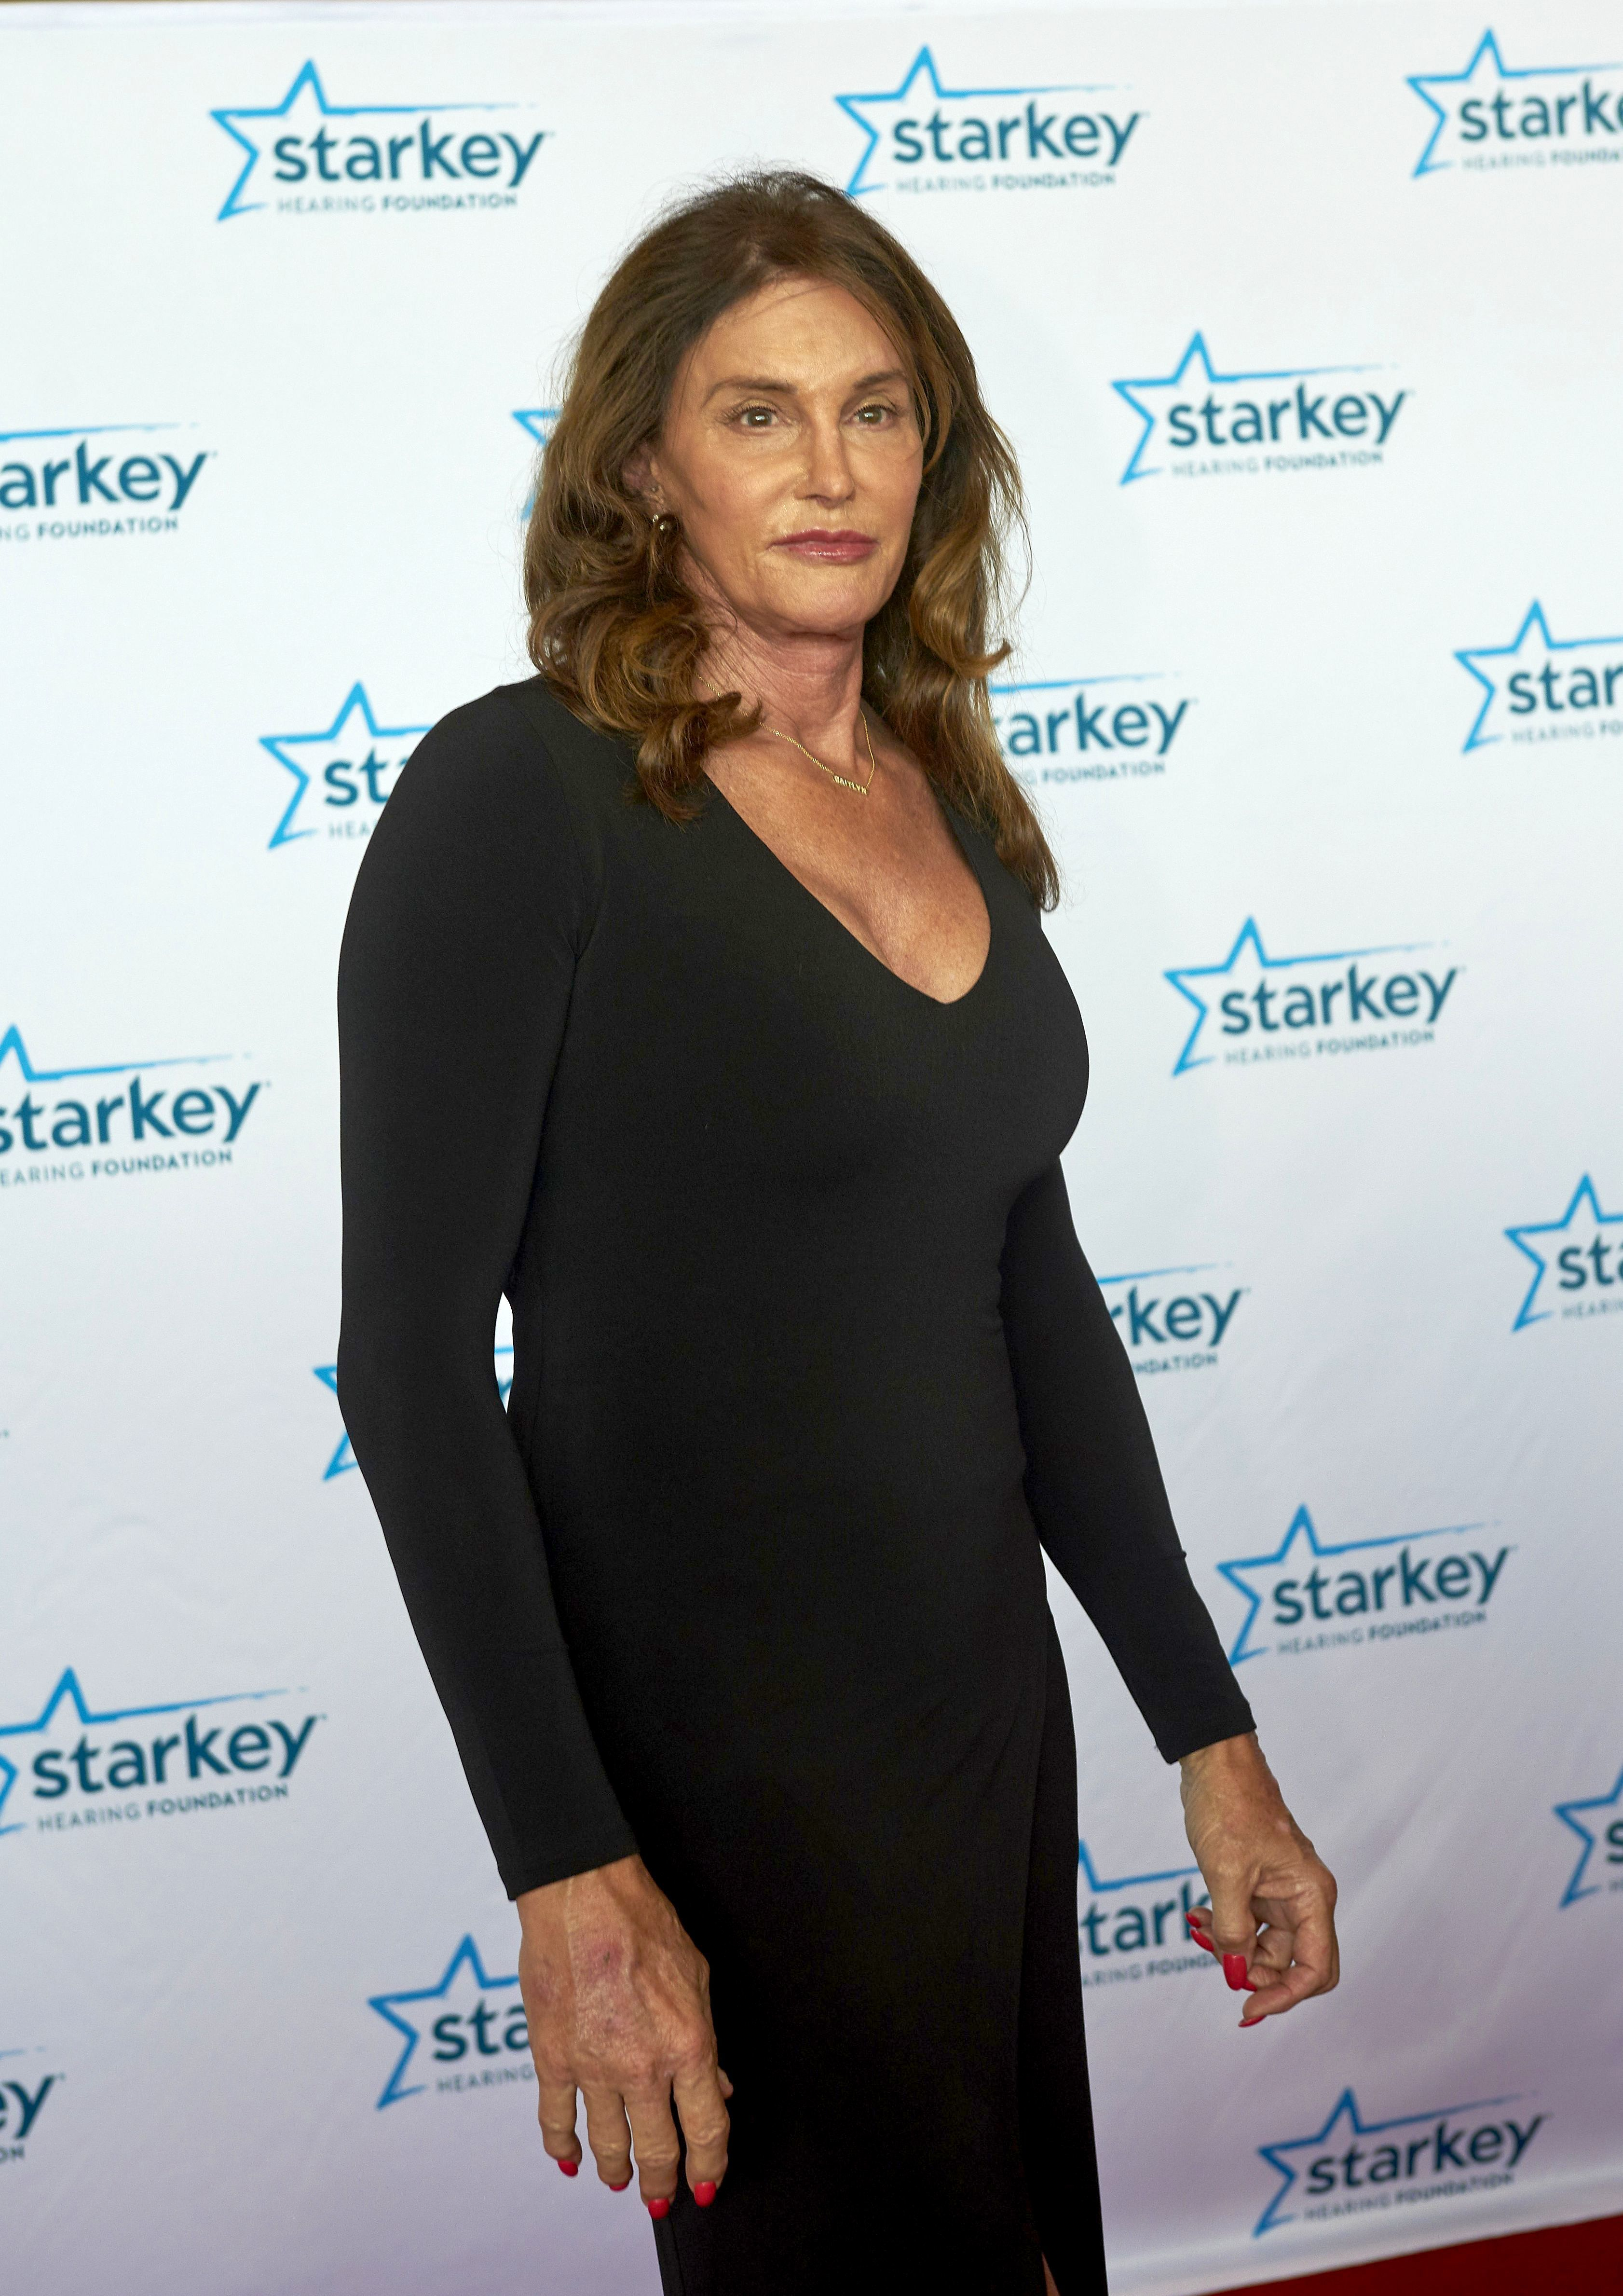 Caitlyn Jenner attends the Starkey Hearing Foundation Awards Gala in St.Paul on July 16, 2017.